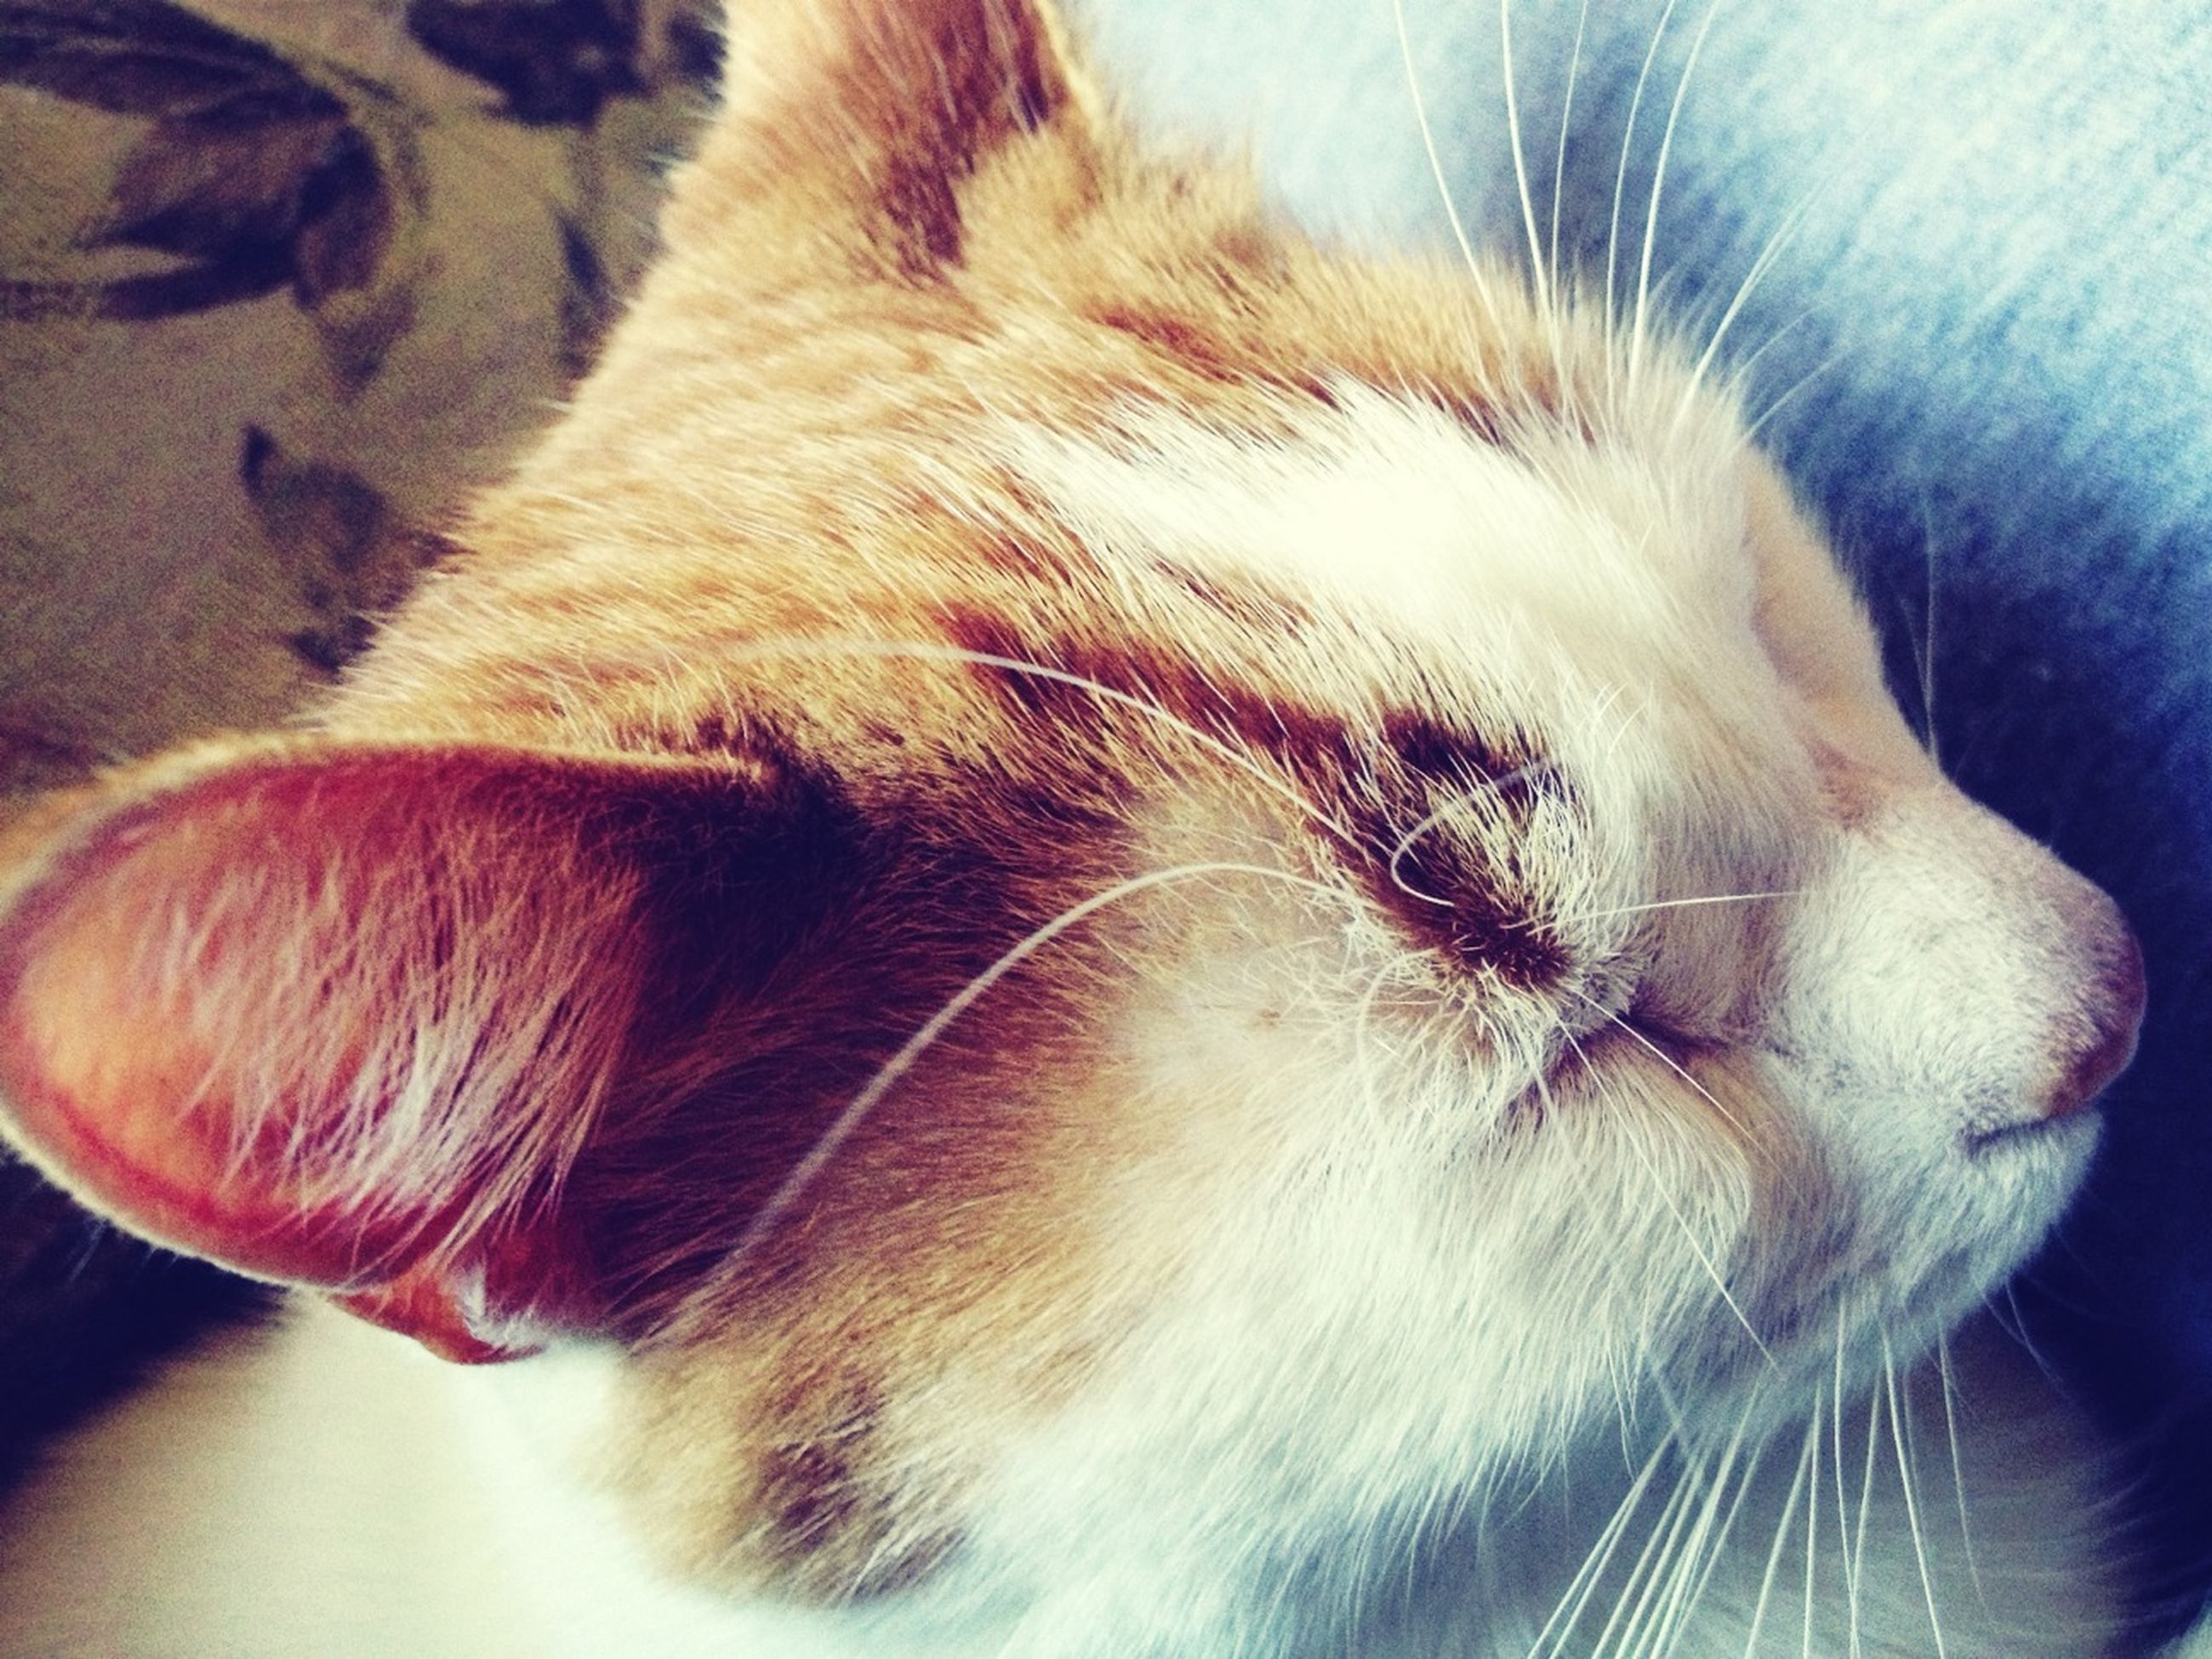 pets, domestic animals, mammal, one animal, animal themes, dog, indoors, close-up, relaxation, domestic cat, sleeping, animal head, feline, eyes closed, cat, resting, whisker, animal body part, lying down, home interior